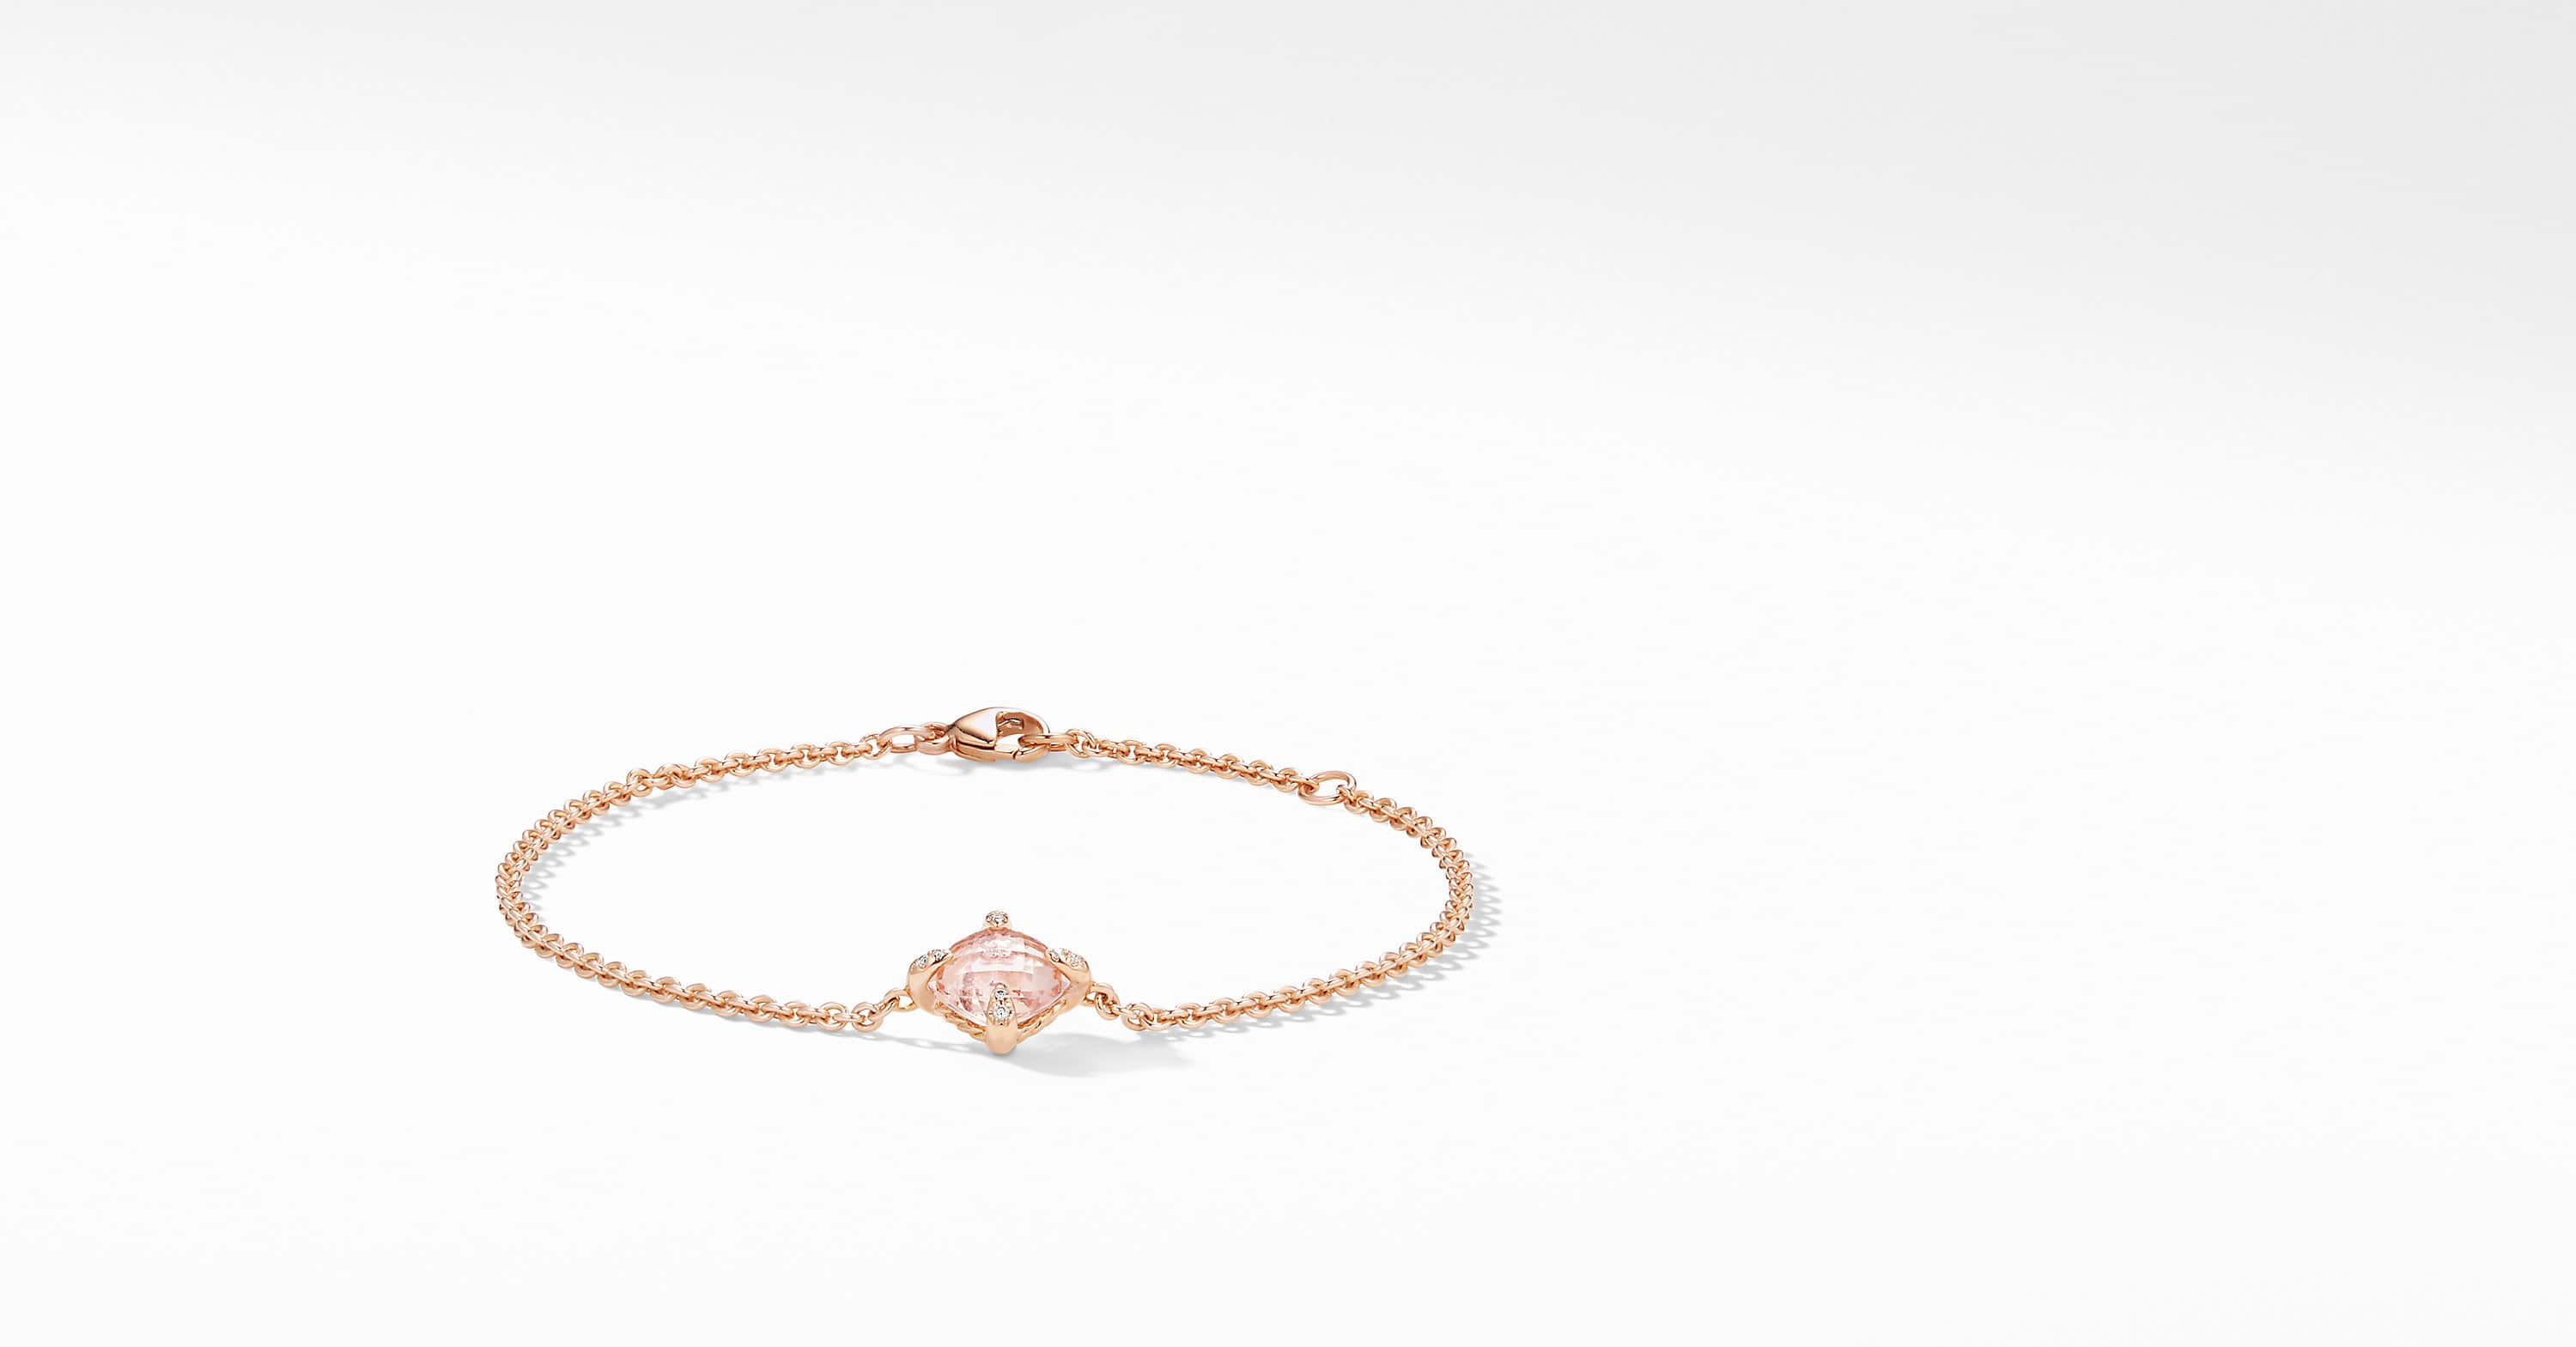 Chatelaine Bracelet with Diamonds in 18K Rose Gold, 8mm